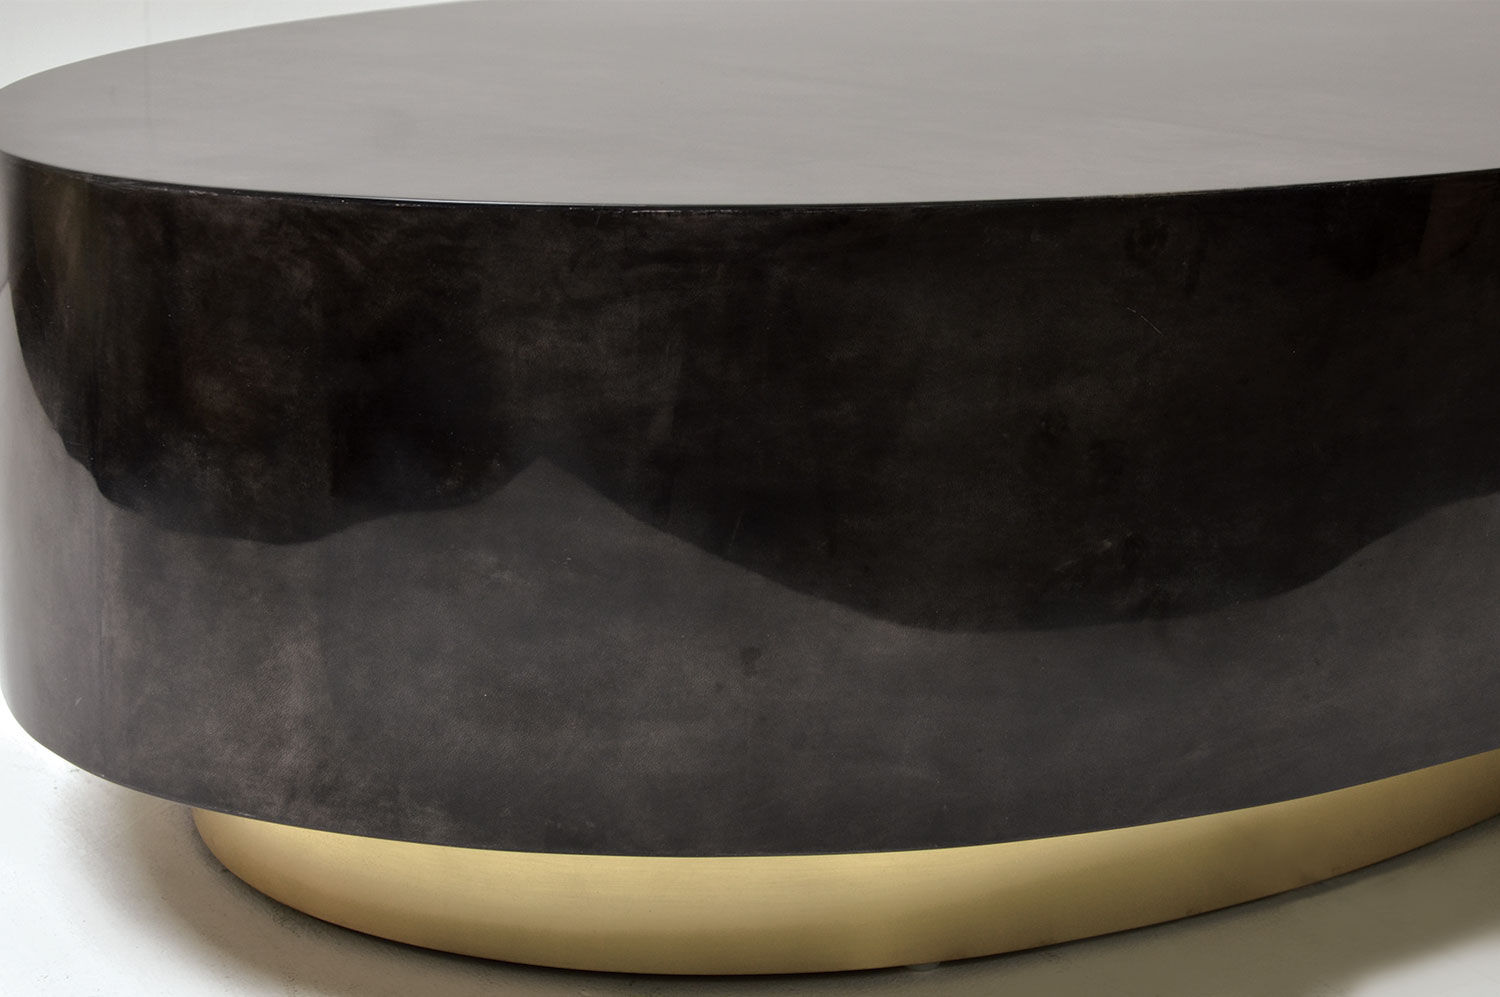 Ovallo Coffee table - Goatskin / Brass 2